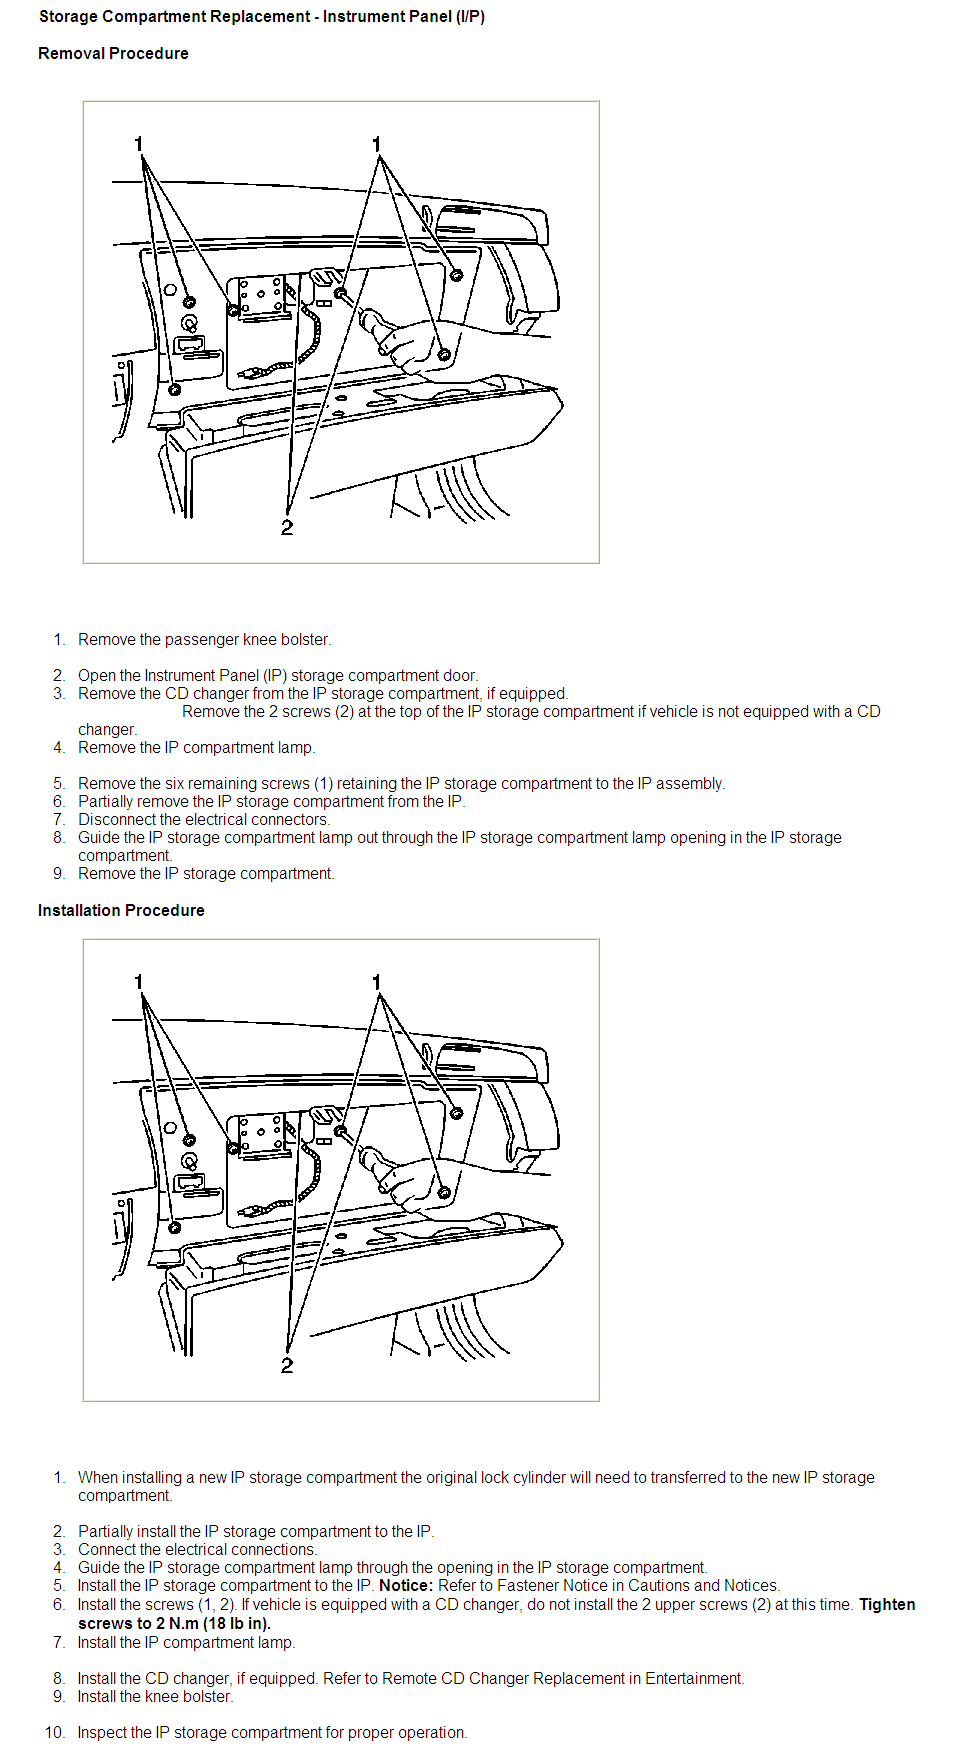 Cd Changer 2000 Deville Electrical Diagram Simple 2003 Wiring Elec How To Install In Glovebox For 2005 Cadillac And Dts